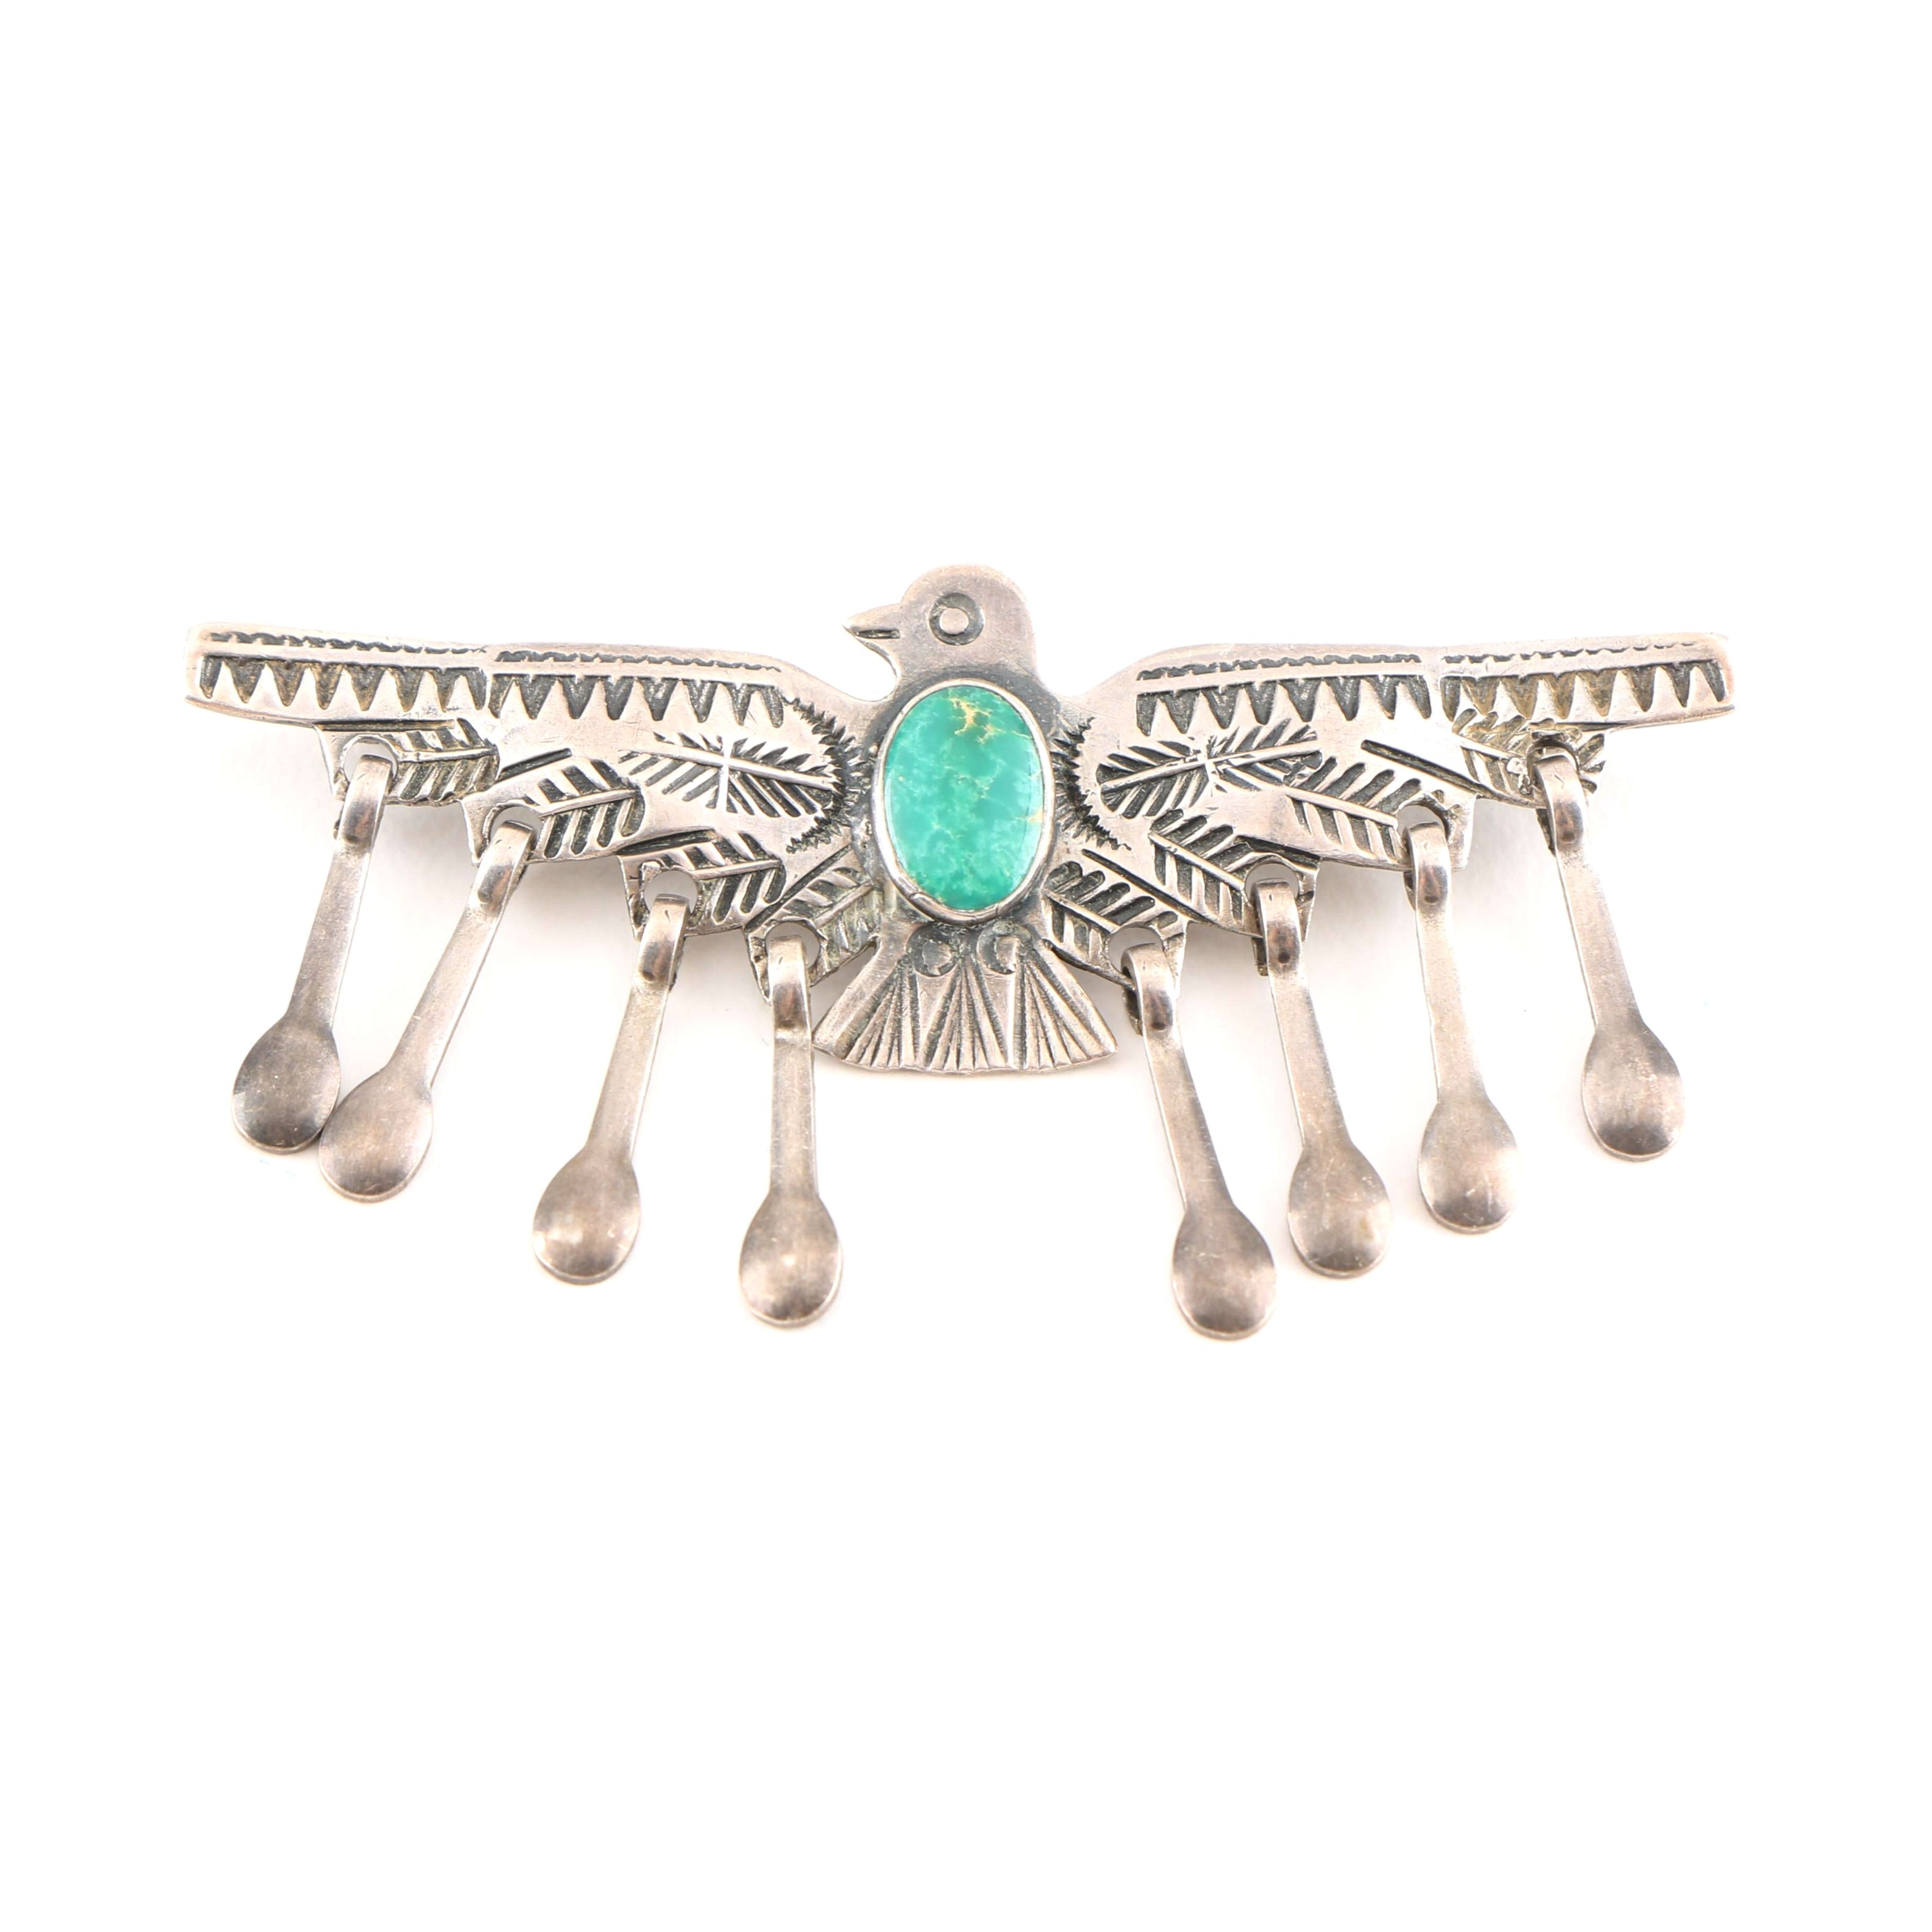 Sterling Silver Native American Style Eagle Brooch With Turquoise Accent